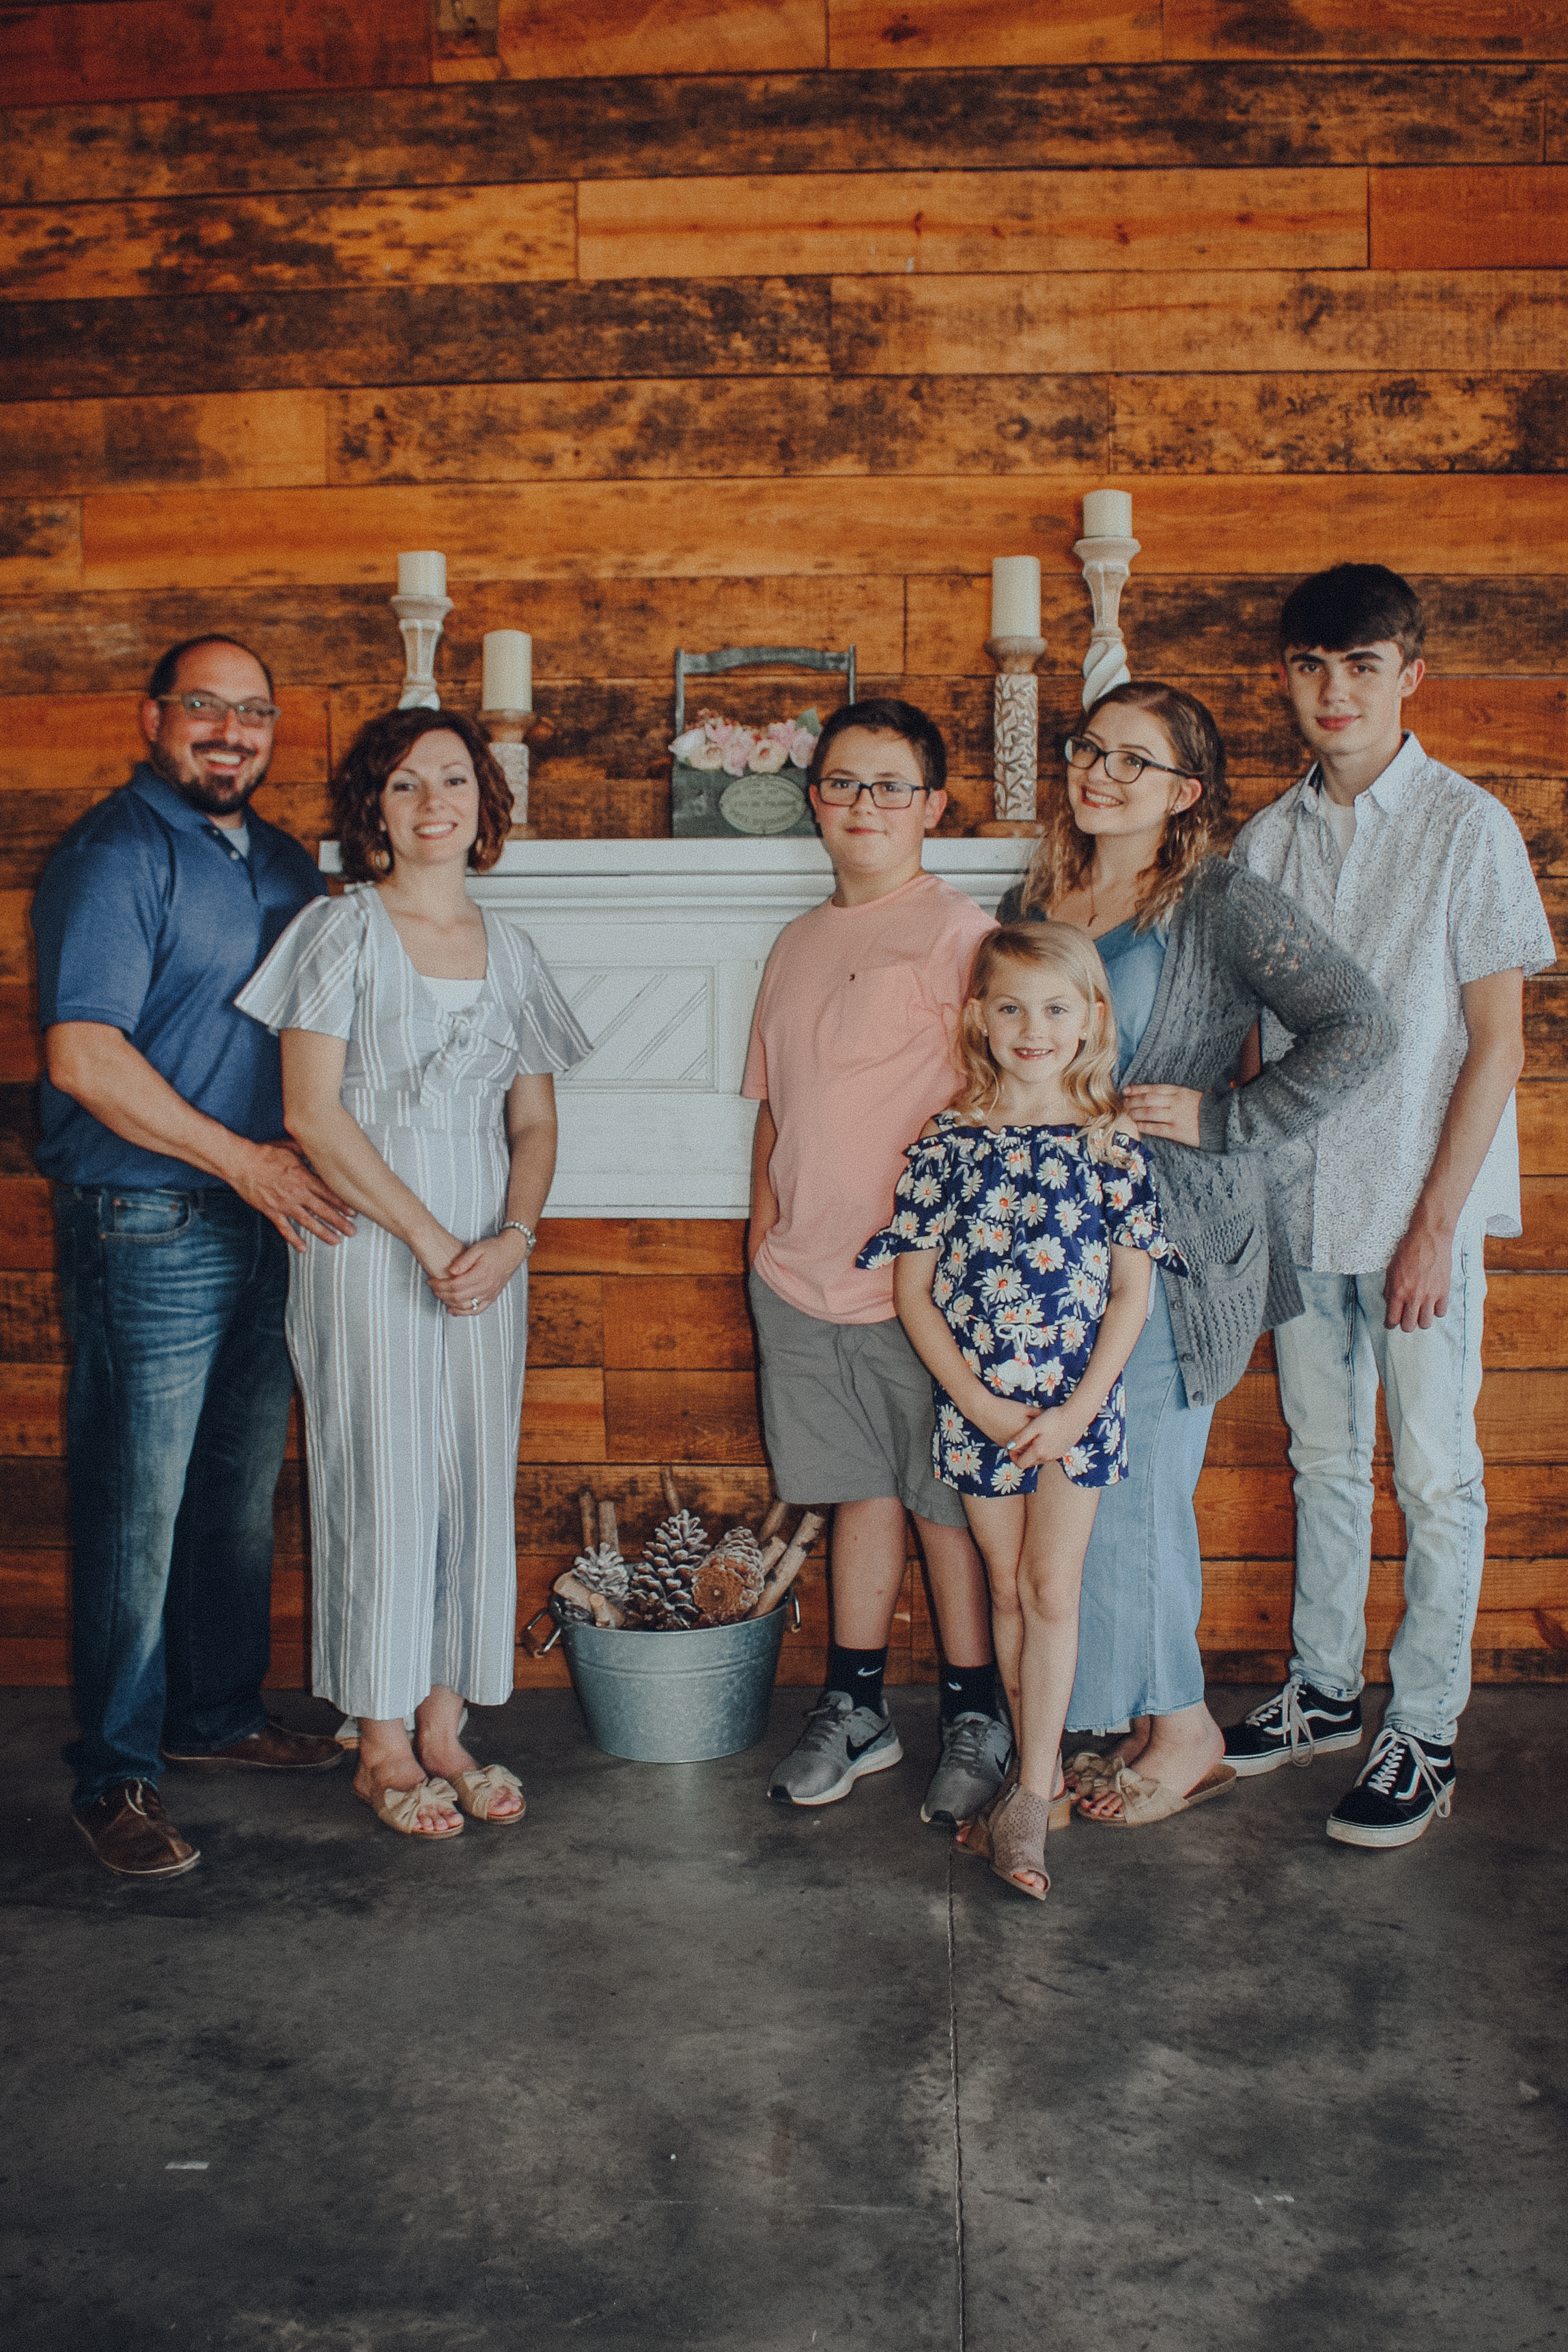 Kids Pastor - Josh & Amanda Singleton have been serving FAM Kids since 2011. The Singleton's are the proud parents of Laney, Ryan, Sam and Sofia.